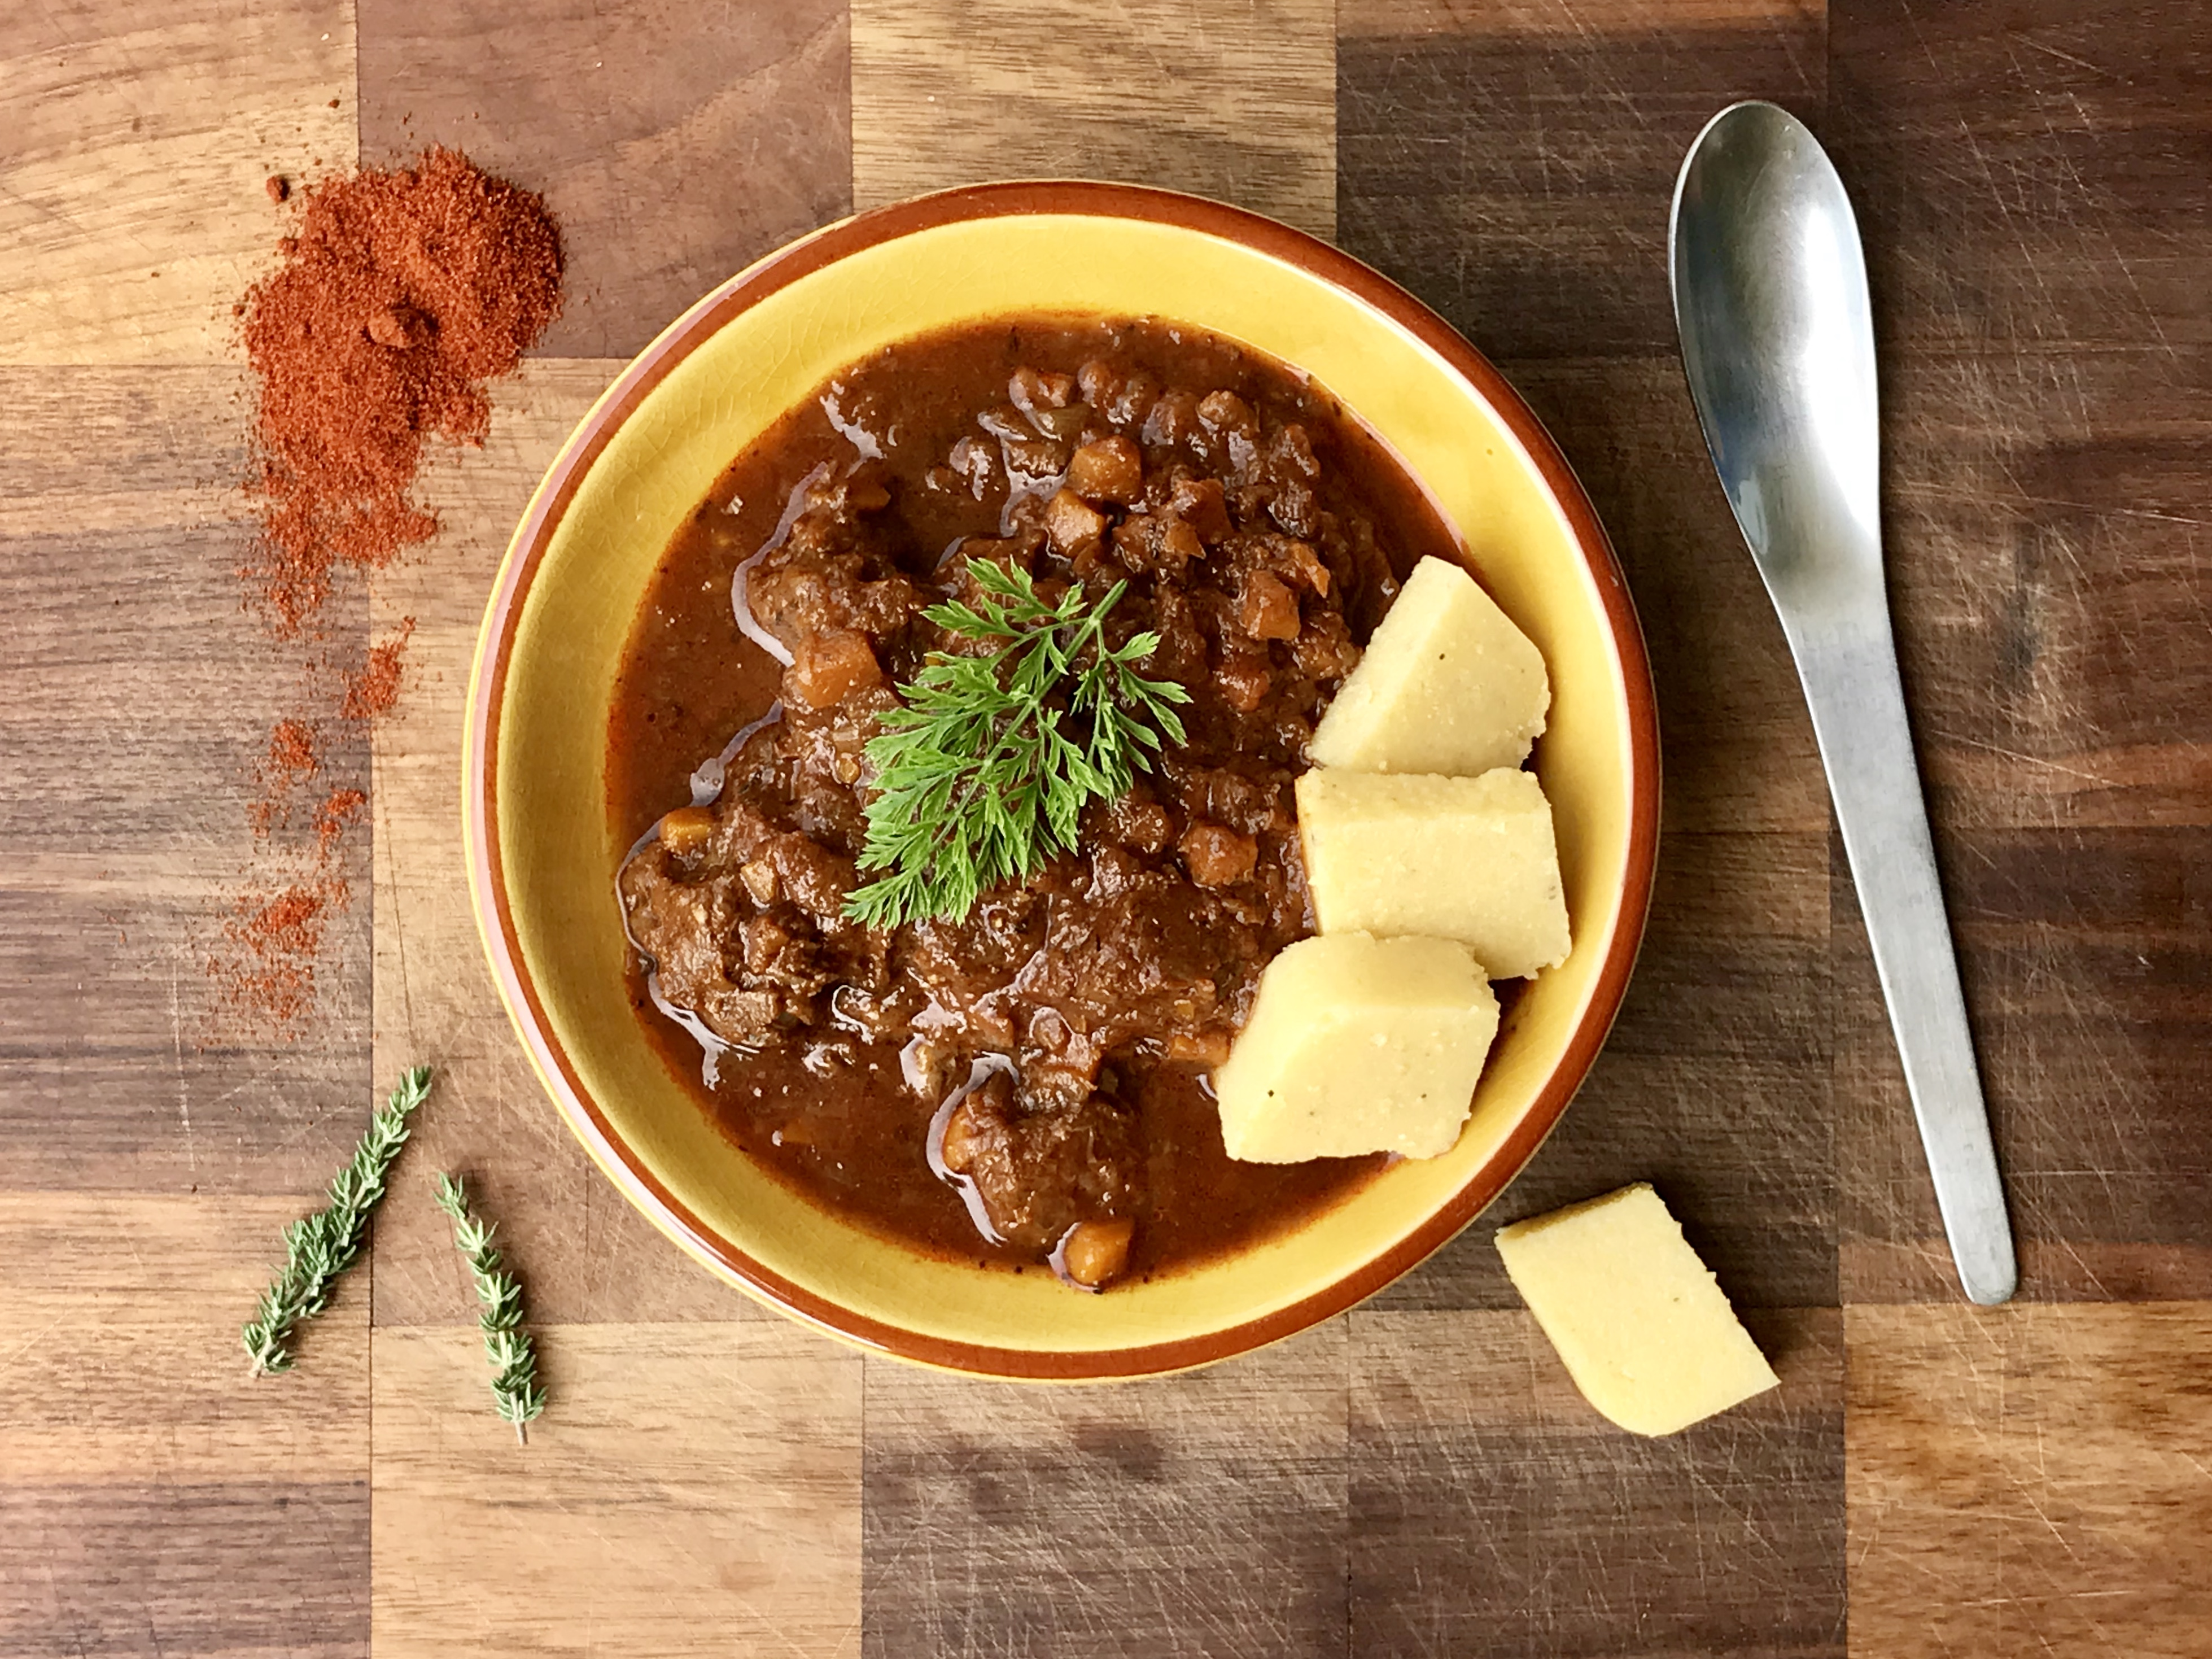 Musings on recipes and goulash